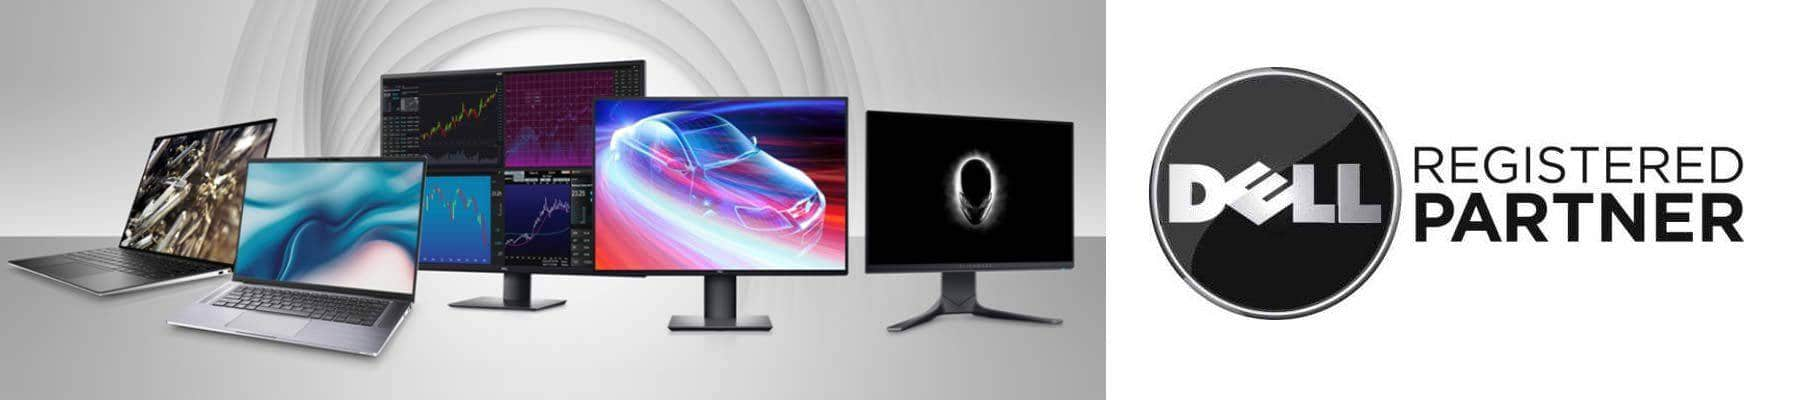 Dell Laptop and Moniters